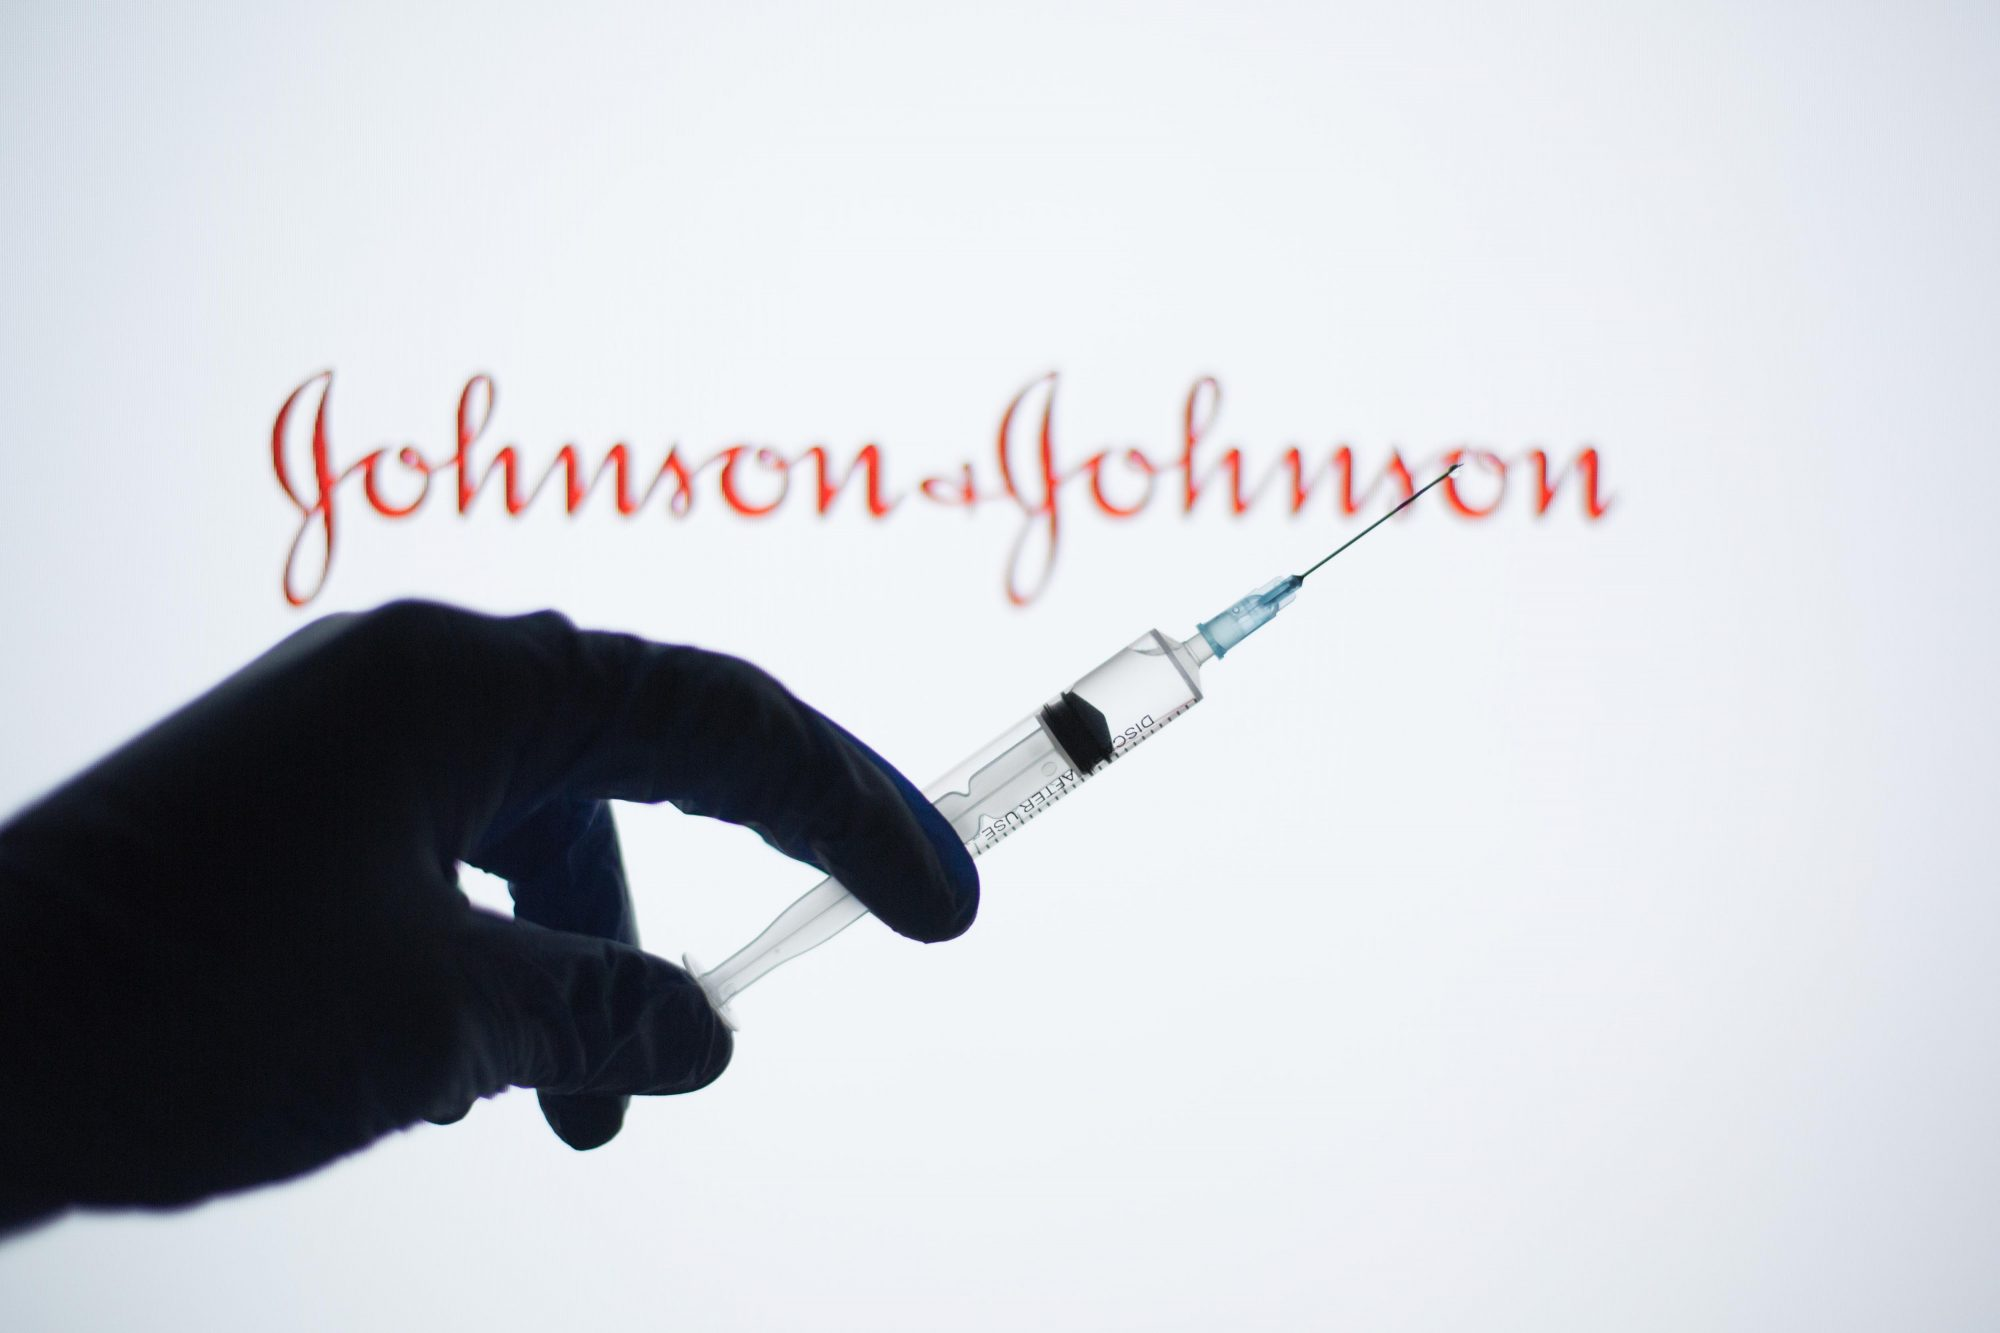 Vacuna Johnson & Johnson